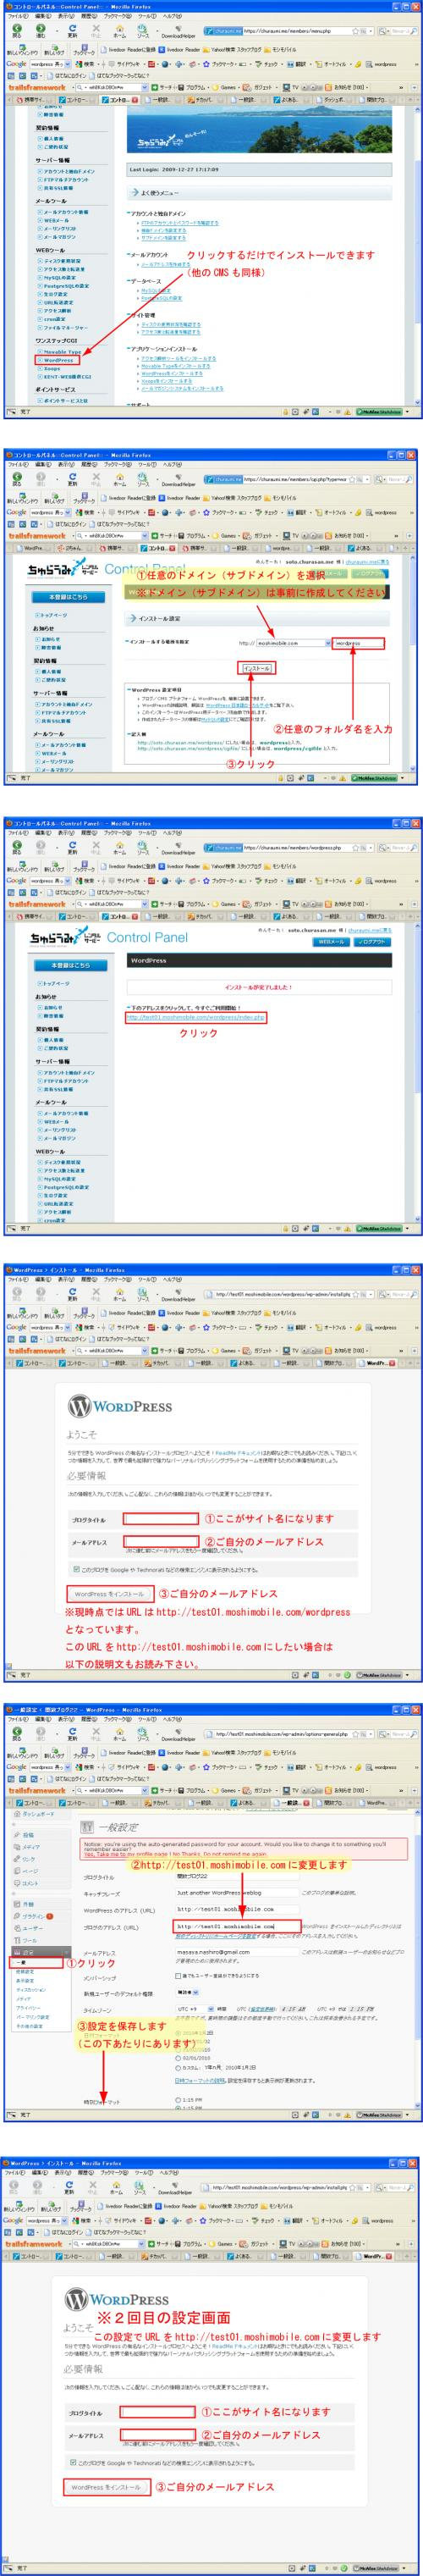 wordpress_install_convert_20100102142155.jpg